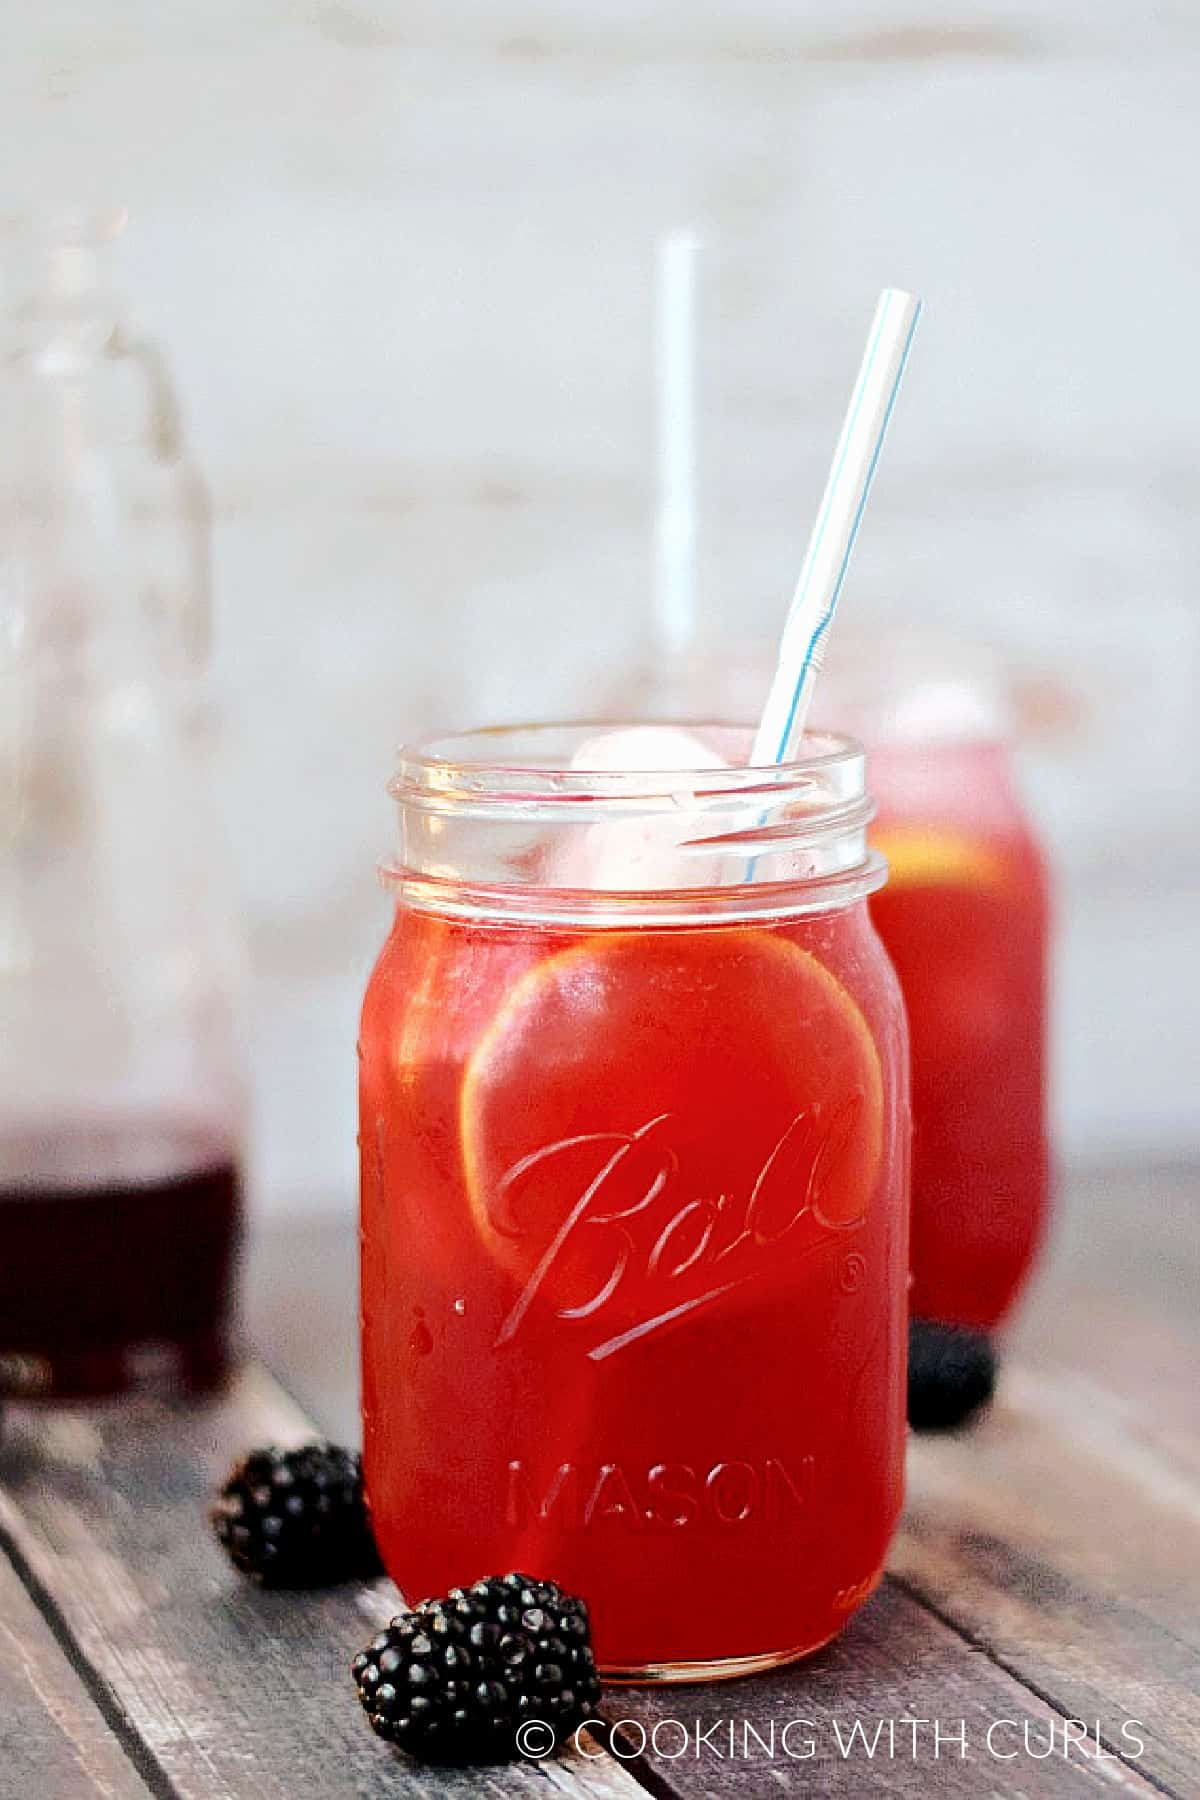 Two mason jars filled with blackberry lemonade with fresh berries on the surface and bottle of syrup in the background.